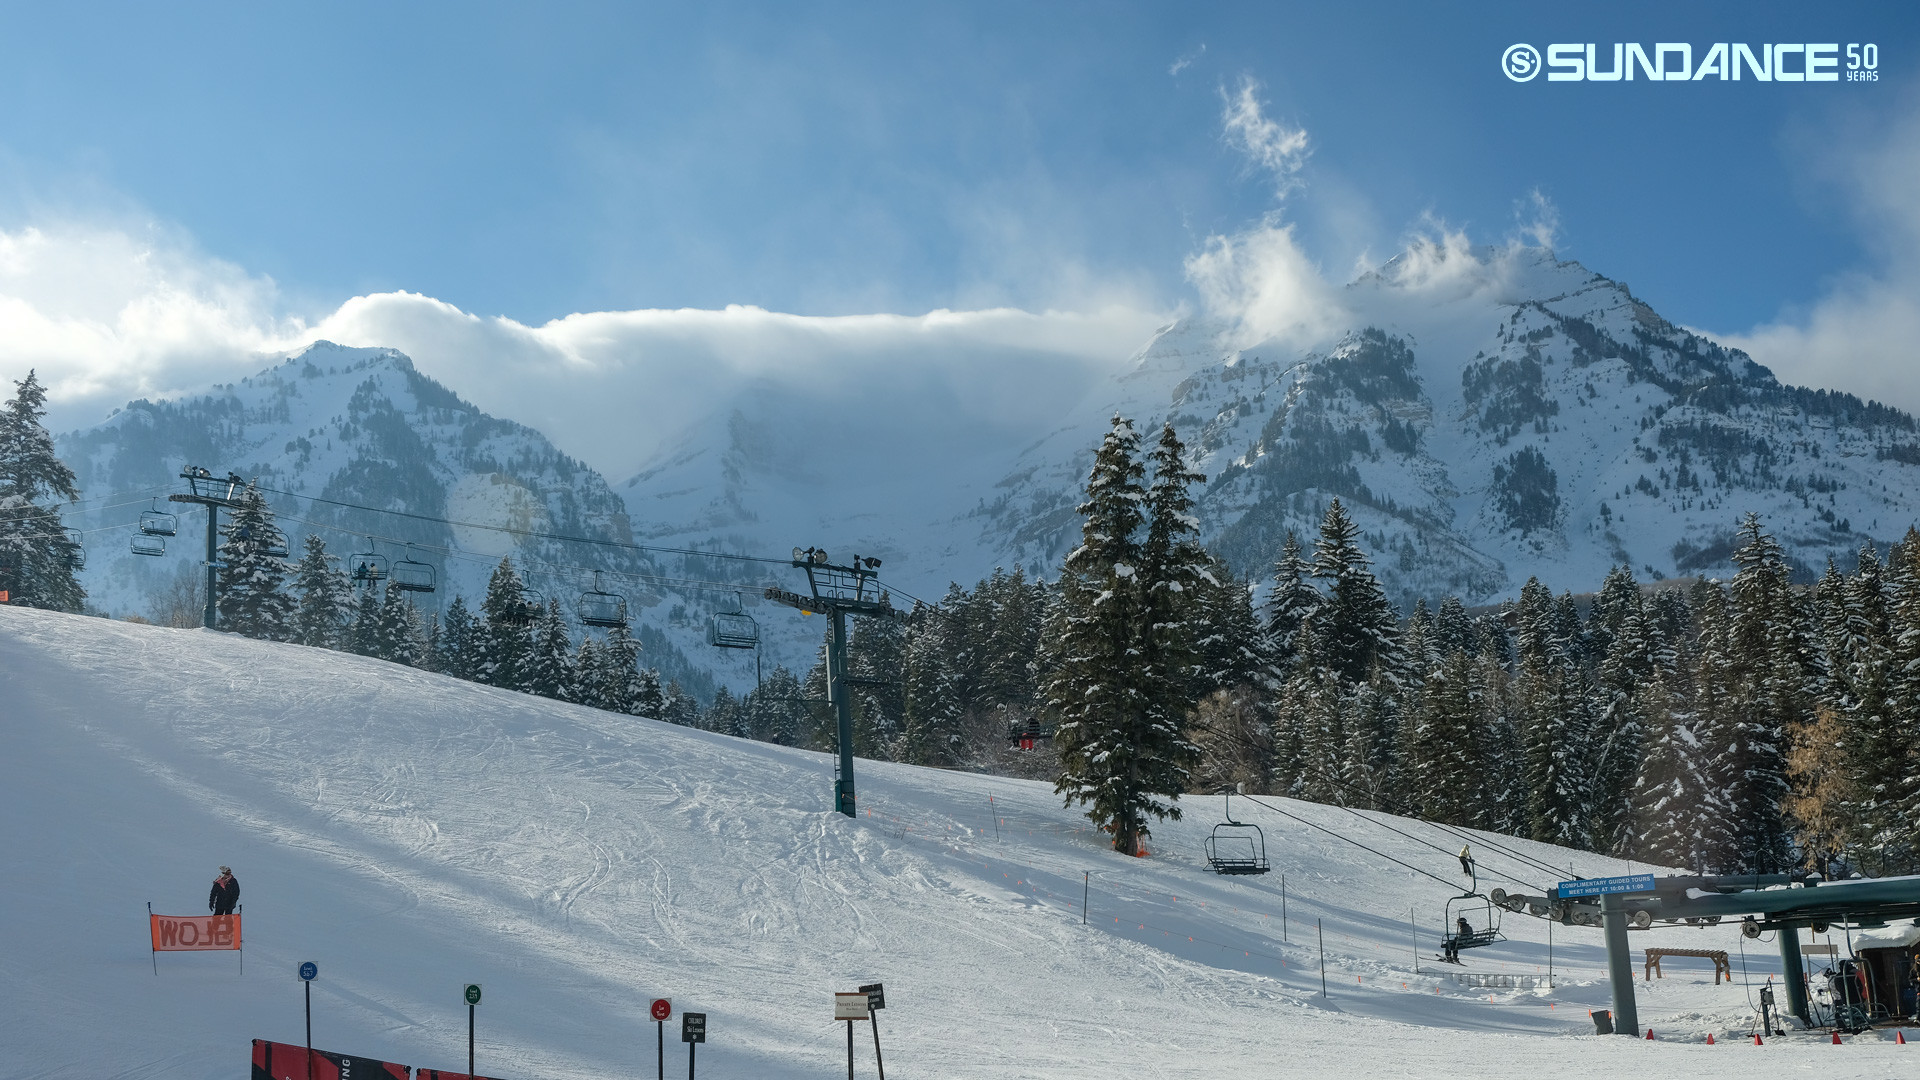 View from Sundance Base this afternoon. Courtesy: https://www.sundanceresort.com/mountain-report/